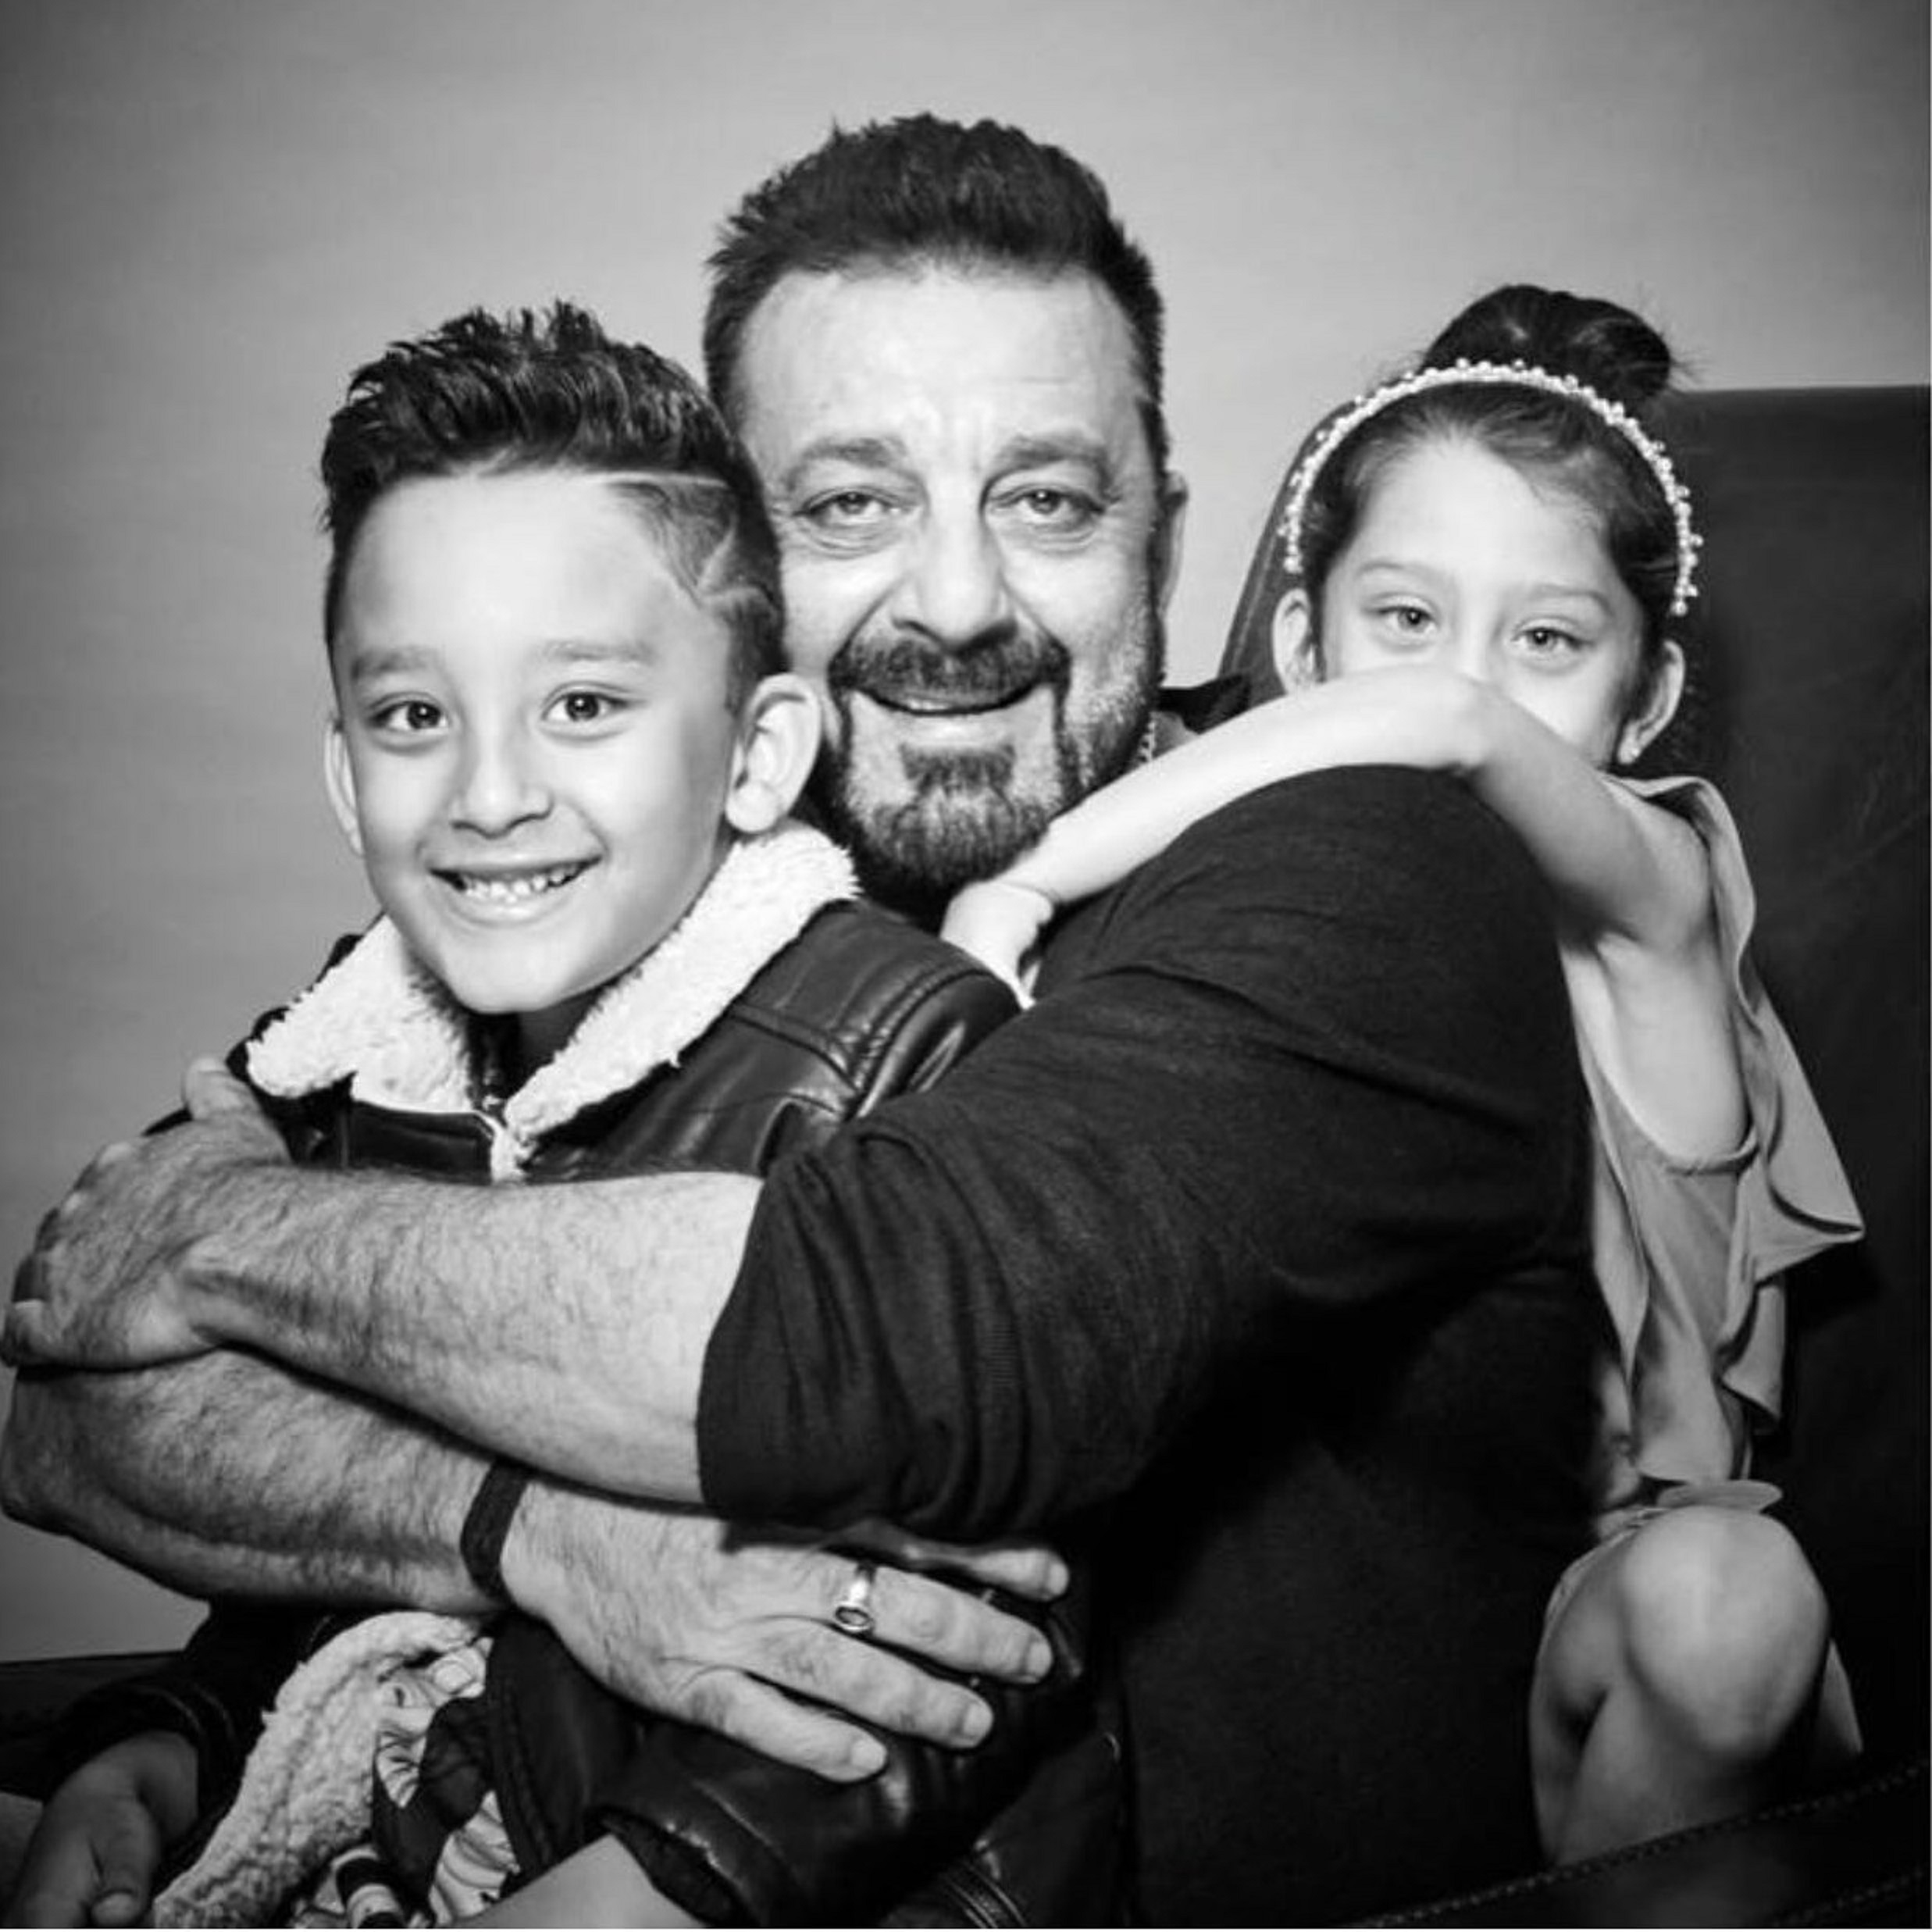 Sanjay Dutt looks absolutely adorable in a photoshoot with his kids!